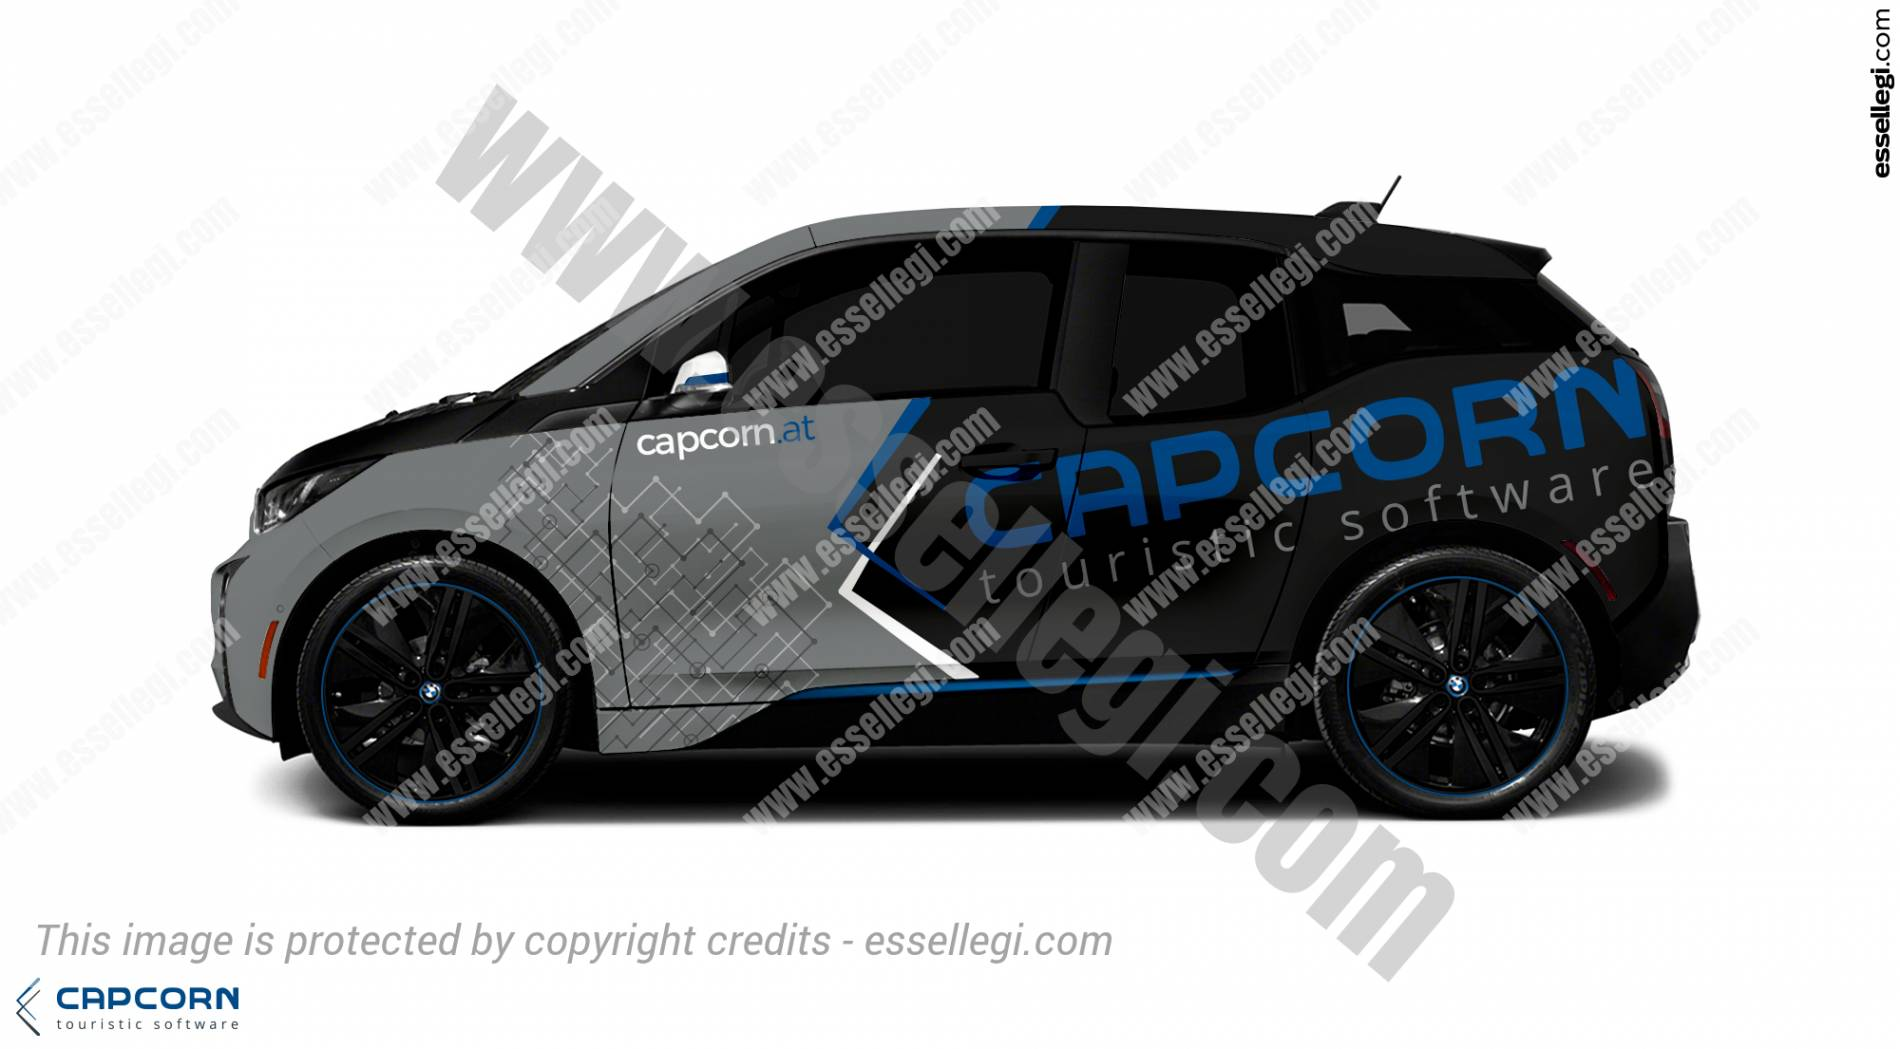 BMW i3 Wrap Design. BMW i3 | Car Wrap Design by Essellegi. Car Signs, Car Signage, Car Signwriting, Car Wrap Designer, Car Graphic, Custom Vehicle Signage, Car Wrap Design by Essellegi.